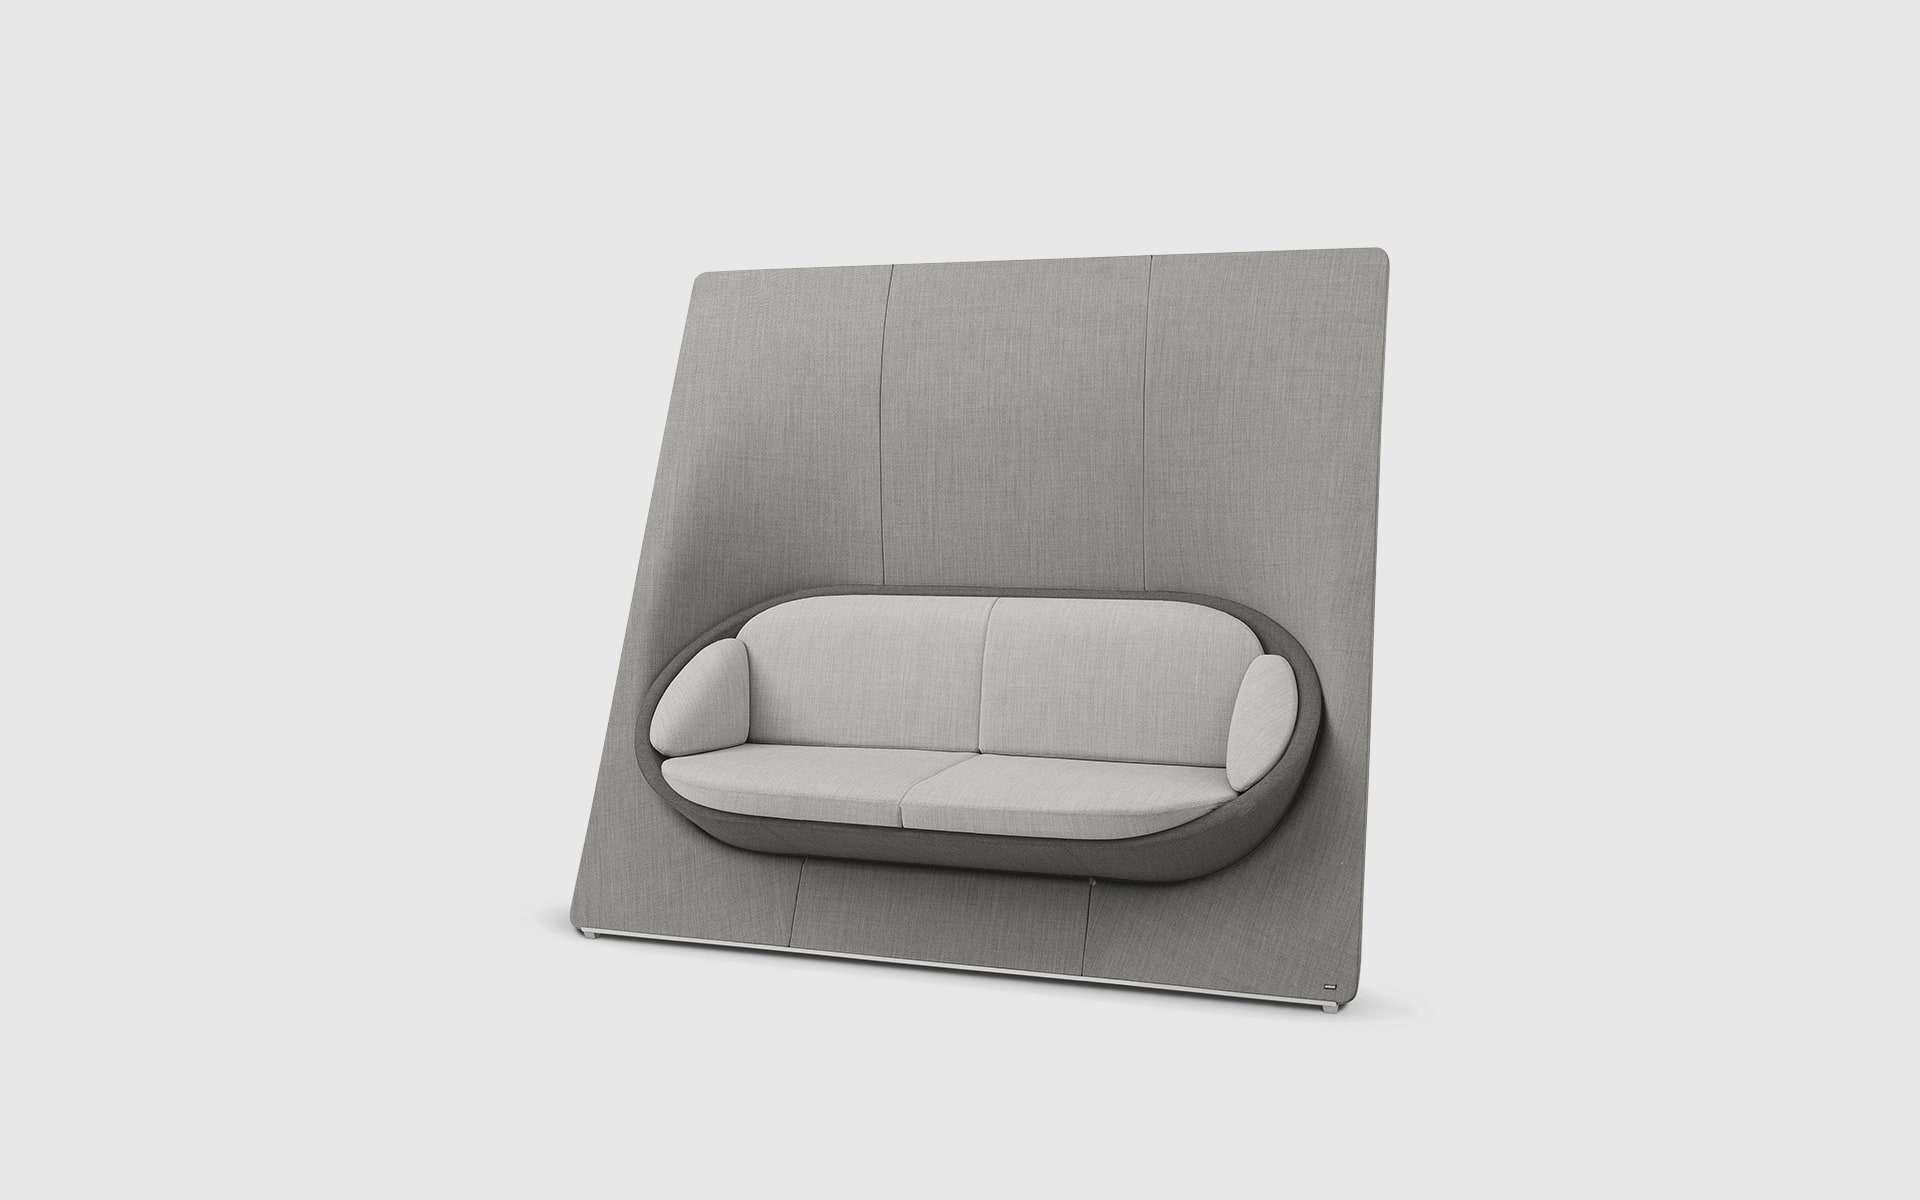 Profim Wyspa lounge seating system by ITO Design in dusky pink and gray